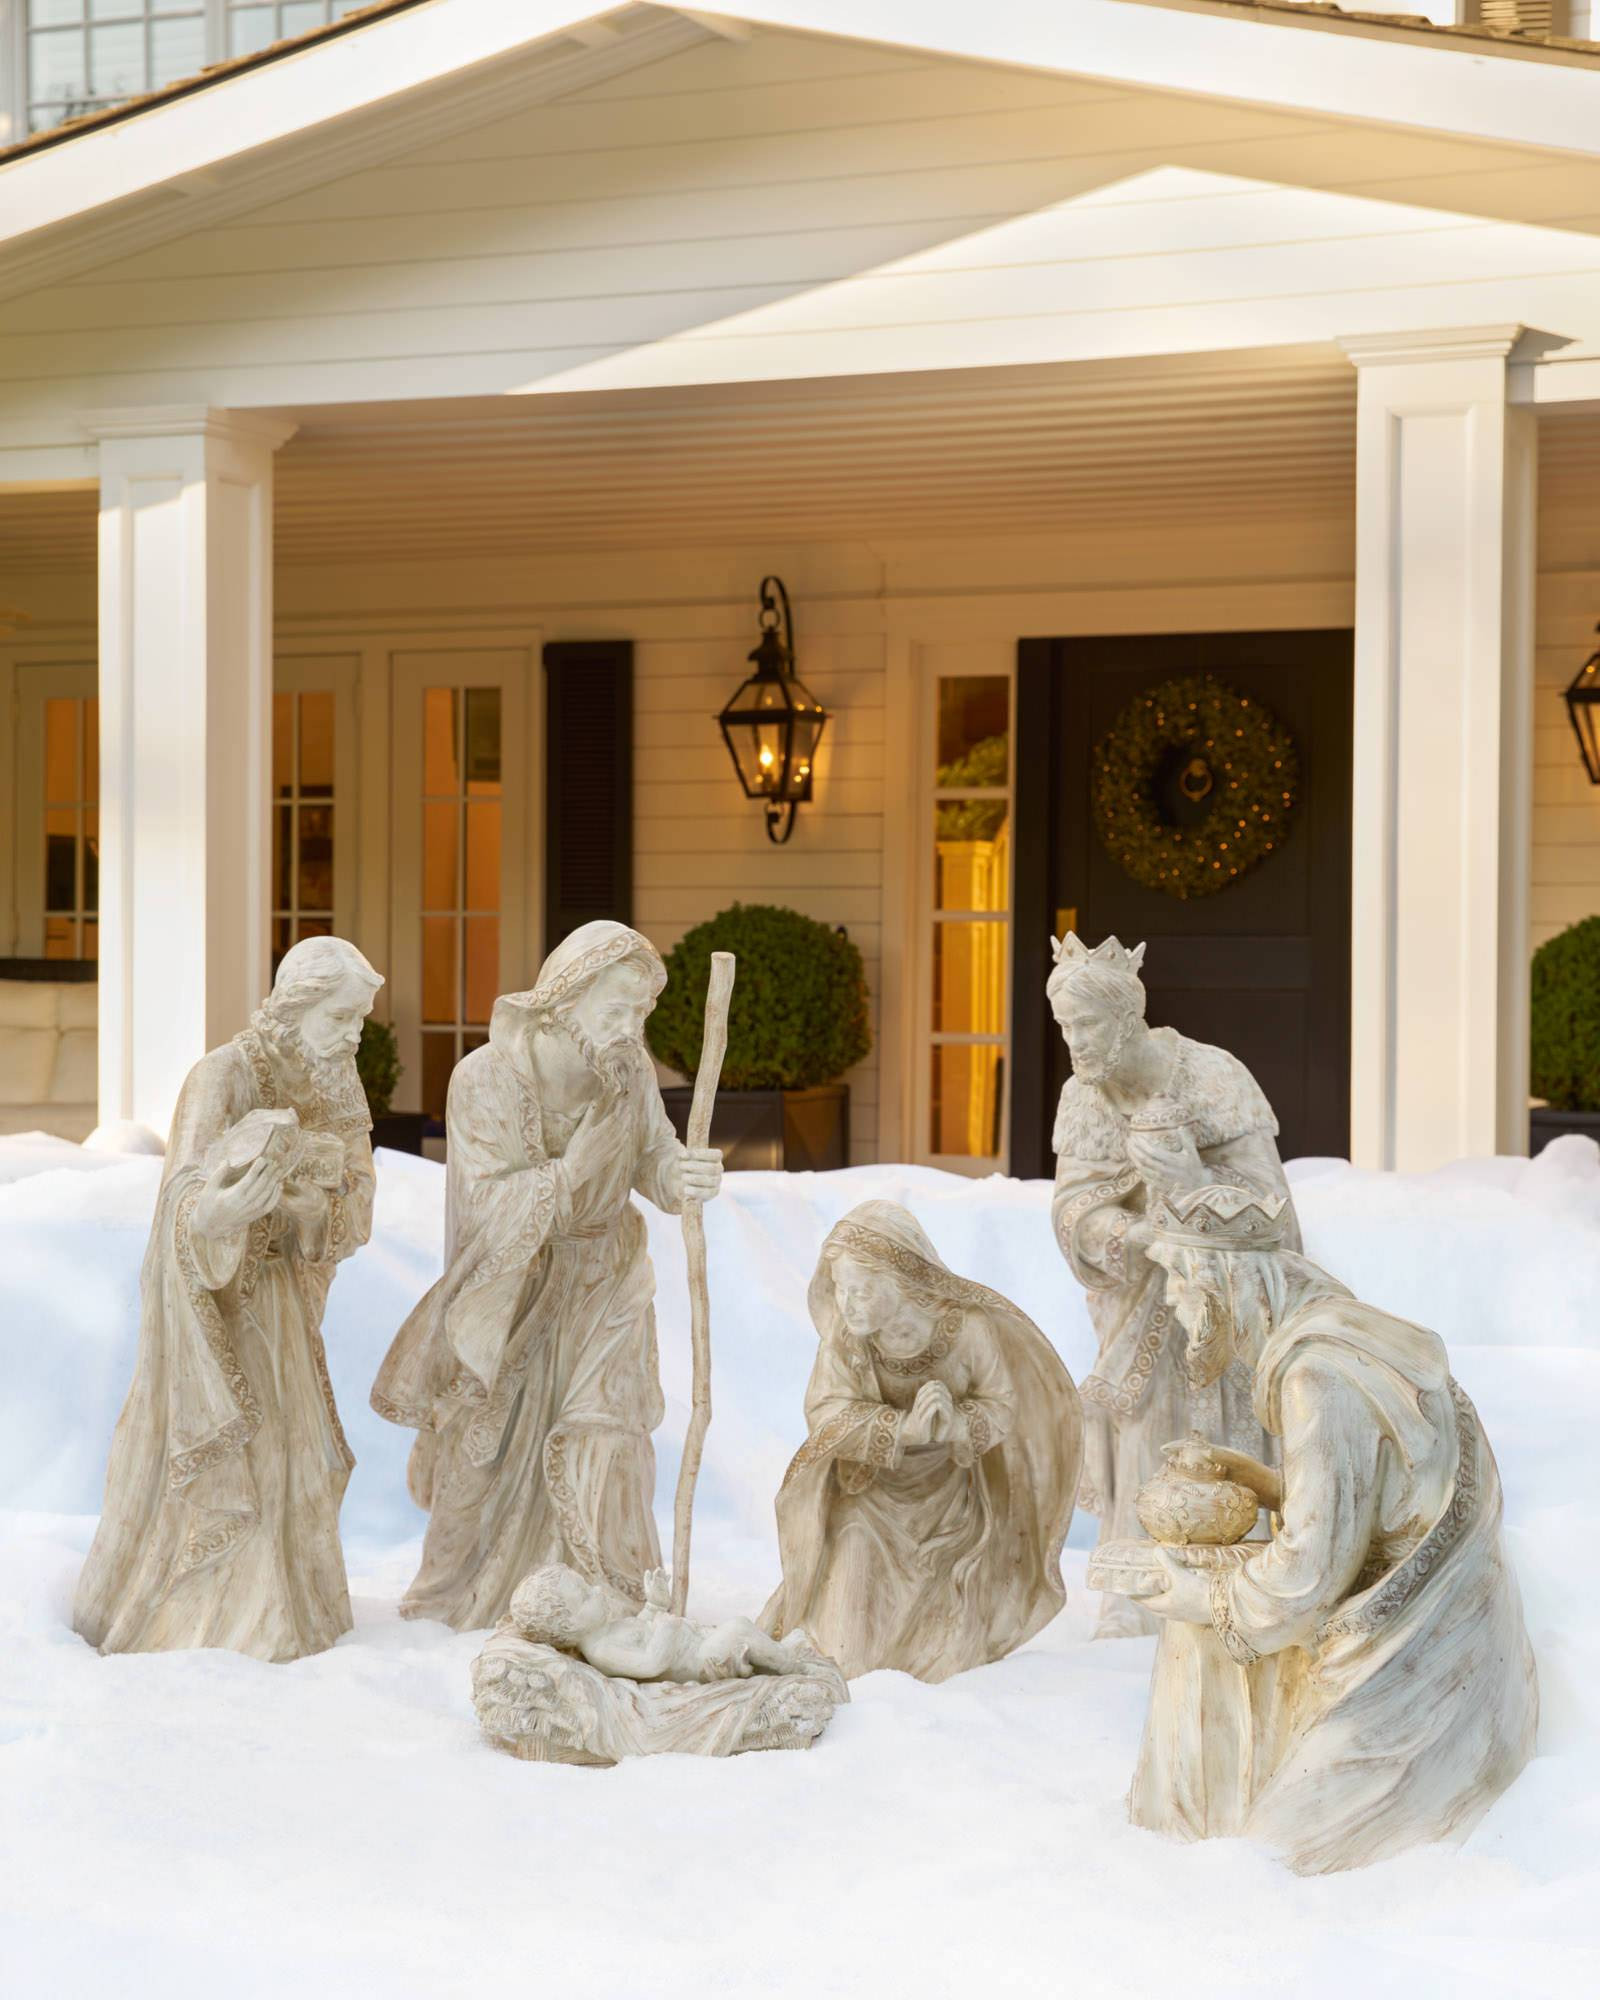 Outdoor Christmas Decorations Clearance  Outdoor Nativity Set